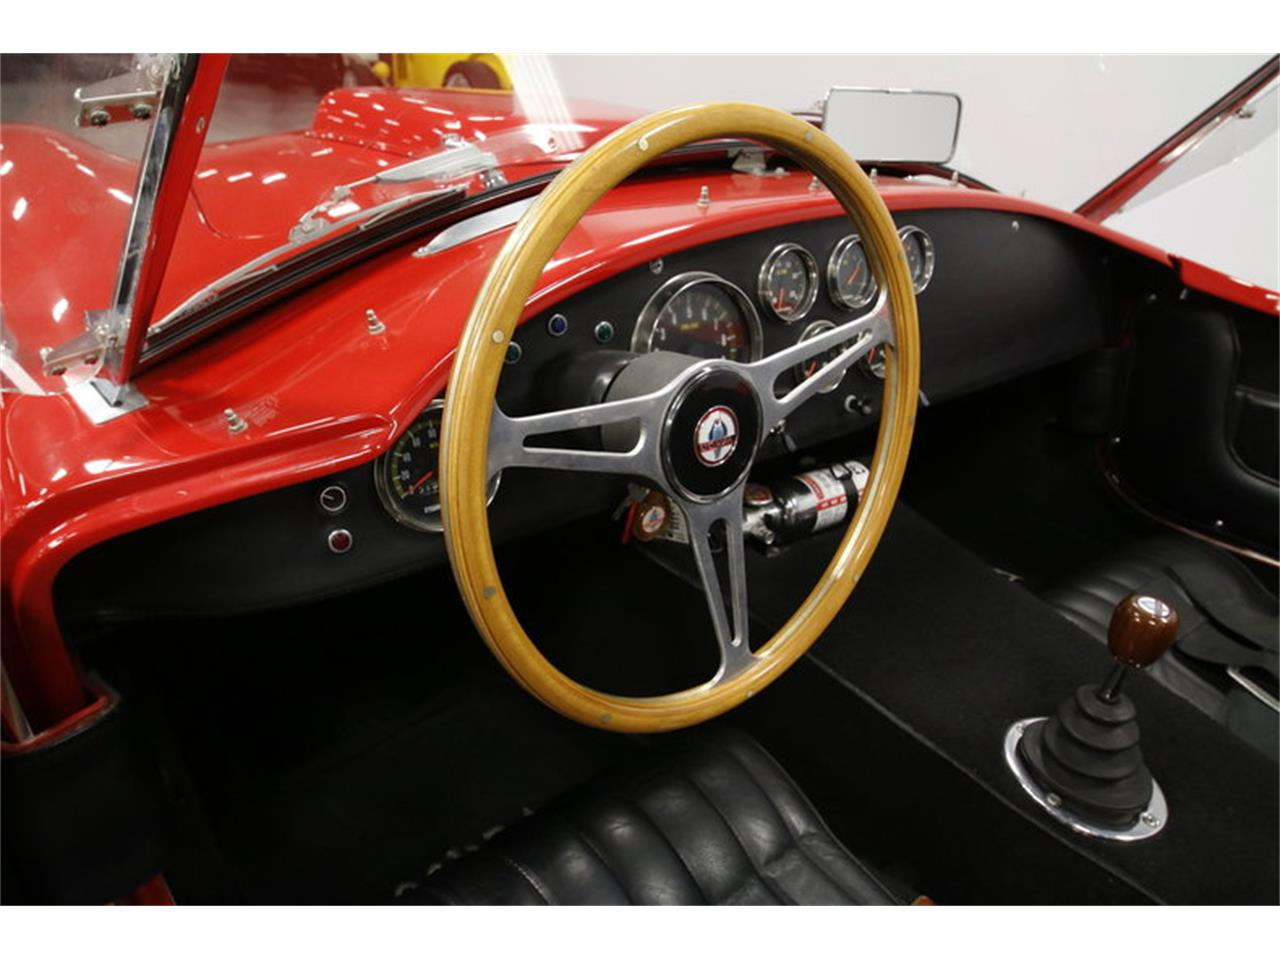 Large Picture of Classic '67 Cobra located in North Carolina - $48,995.00 Offered by Streetside Classics - Charlotte - MZEF